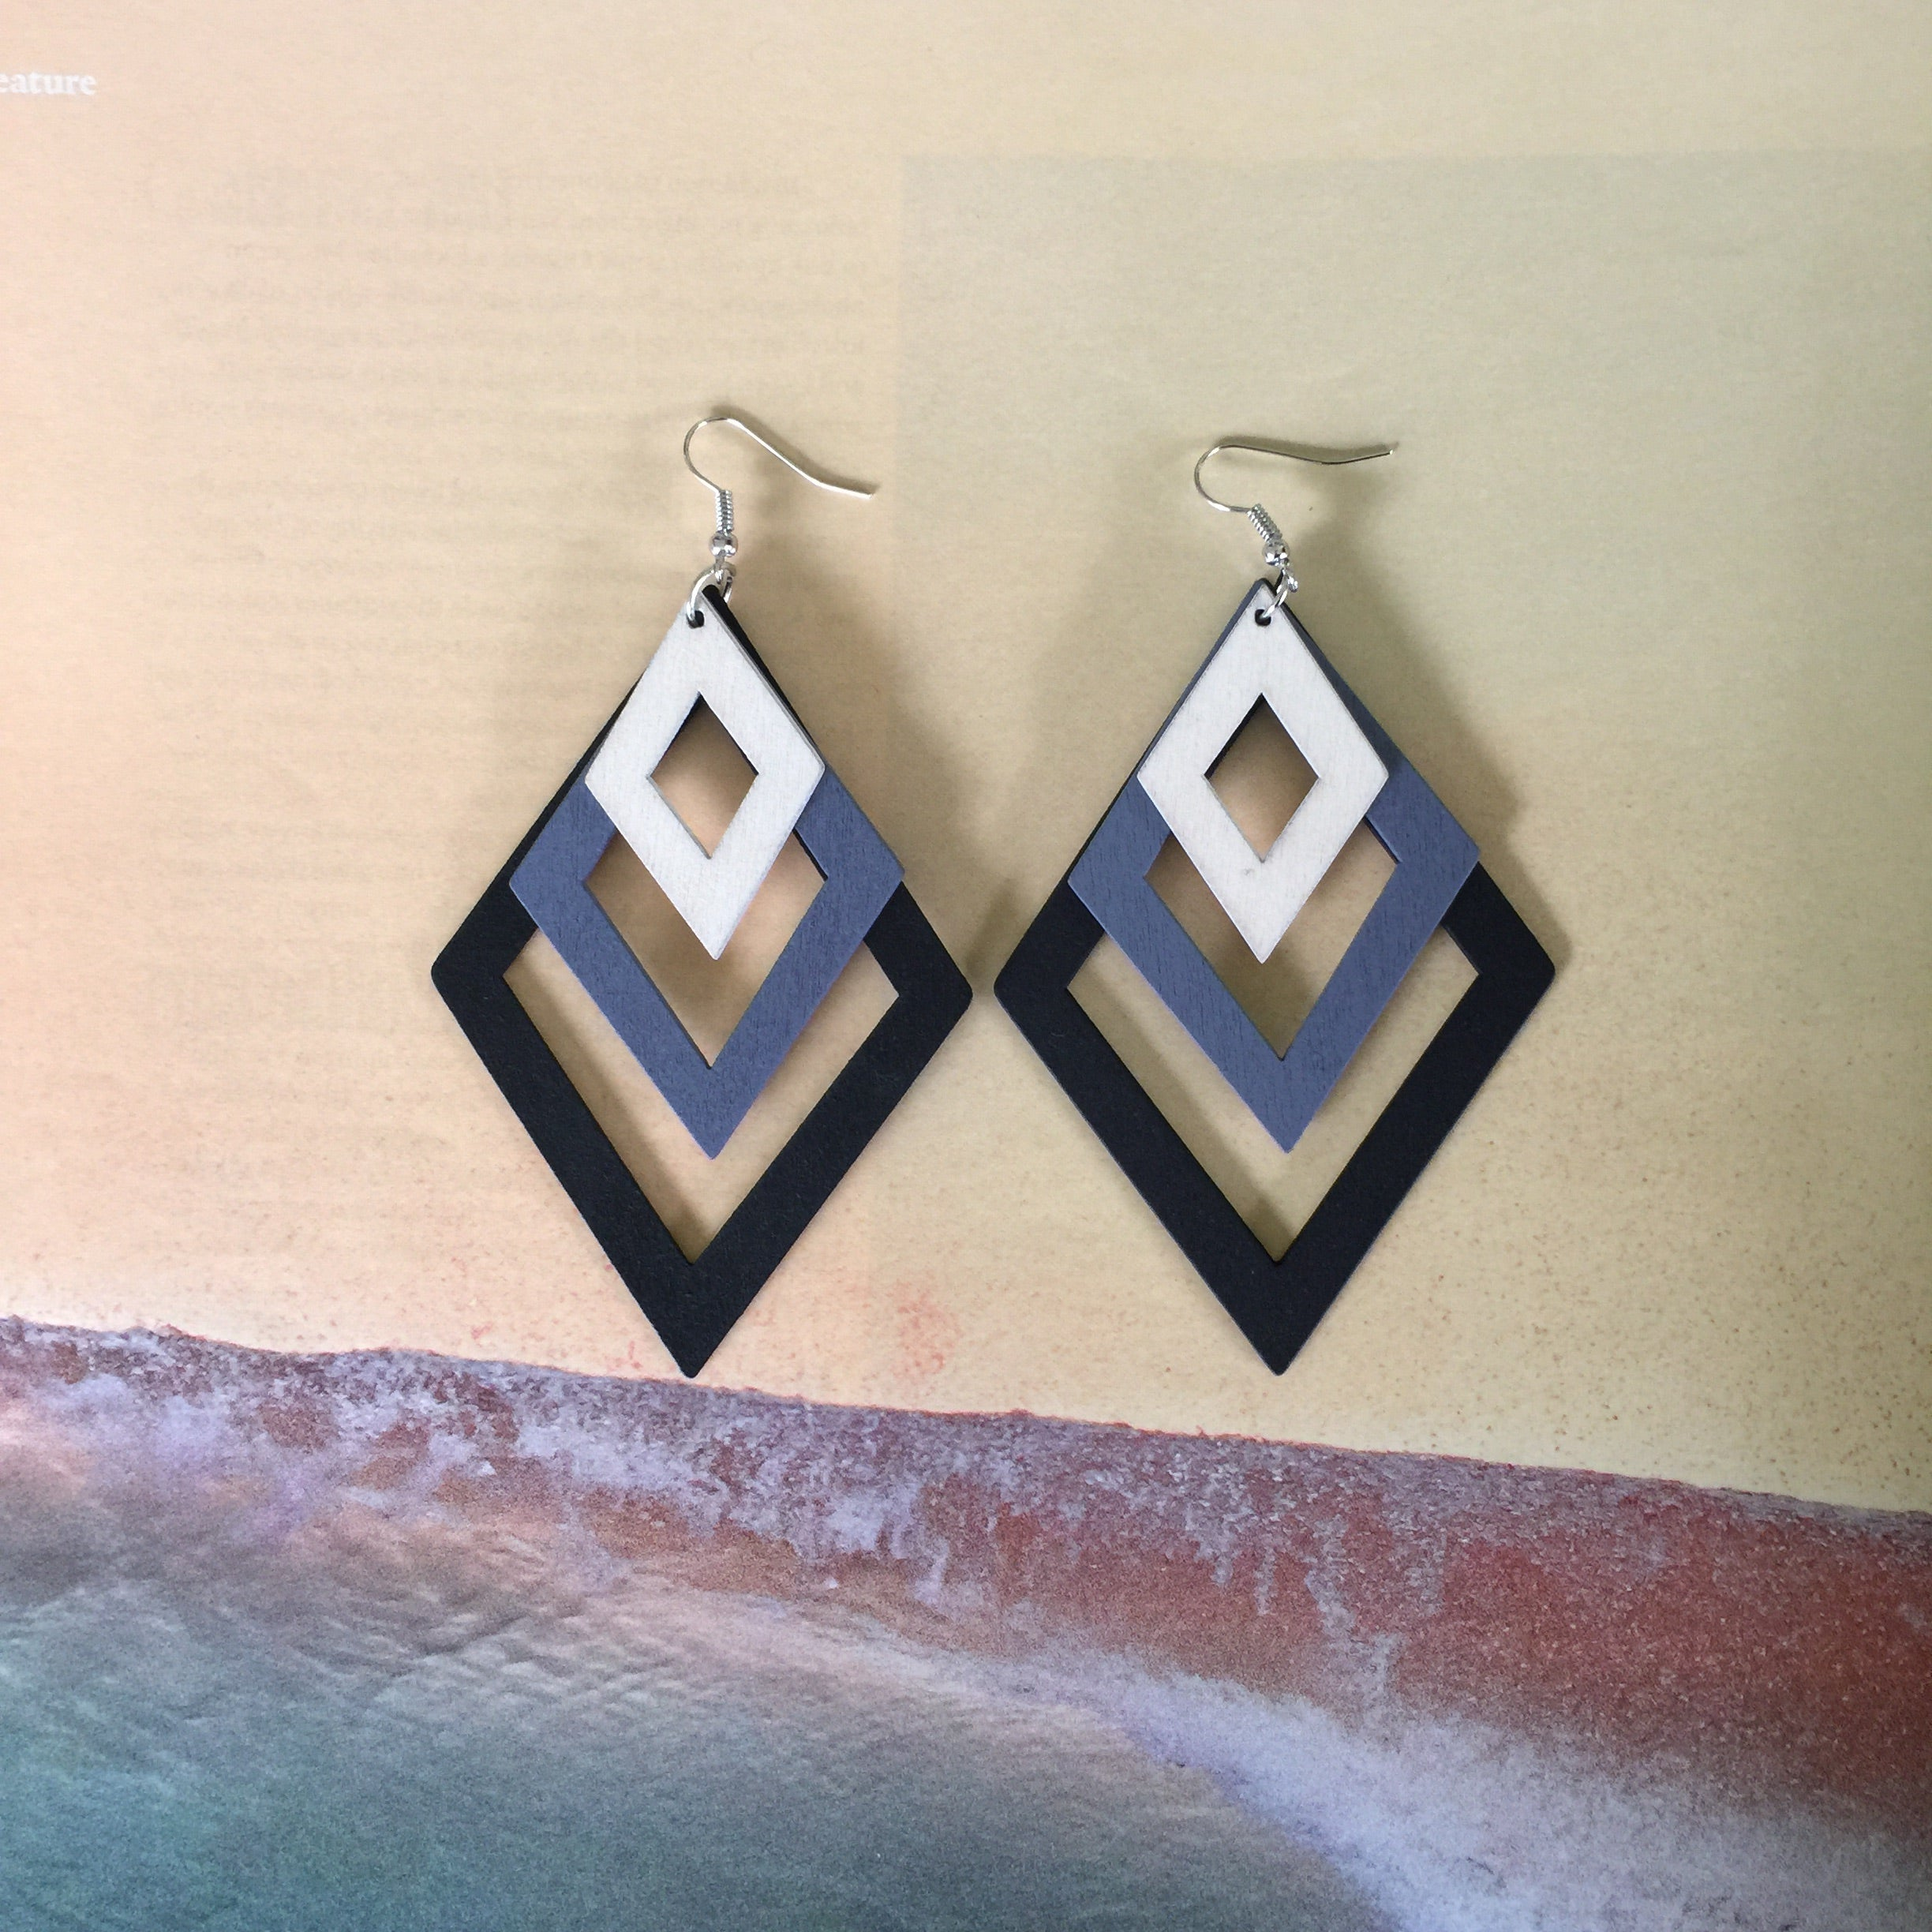 Wood Laser Cut earrings| Colorful gradient Layers| Diamond and Teardrop Style| GRAY - Honorooroo Lifestyle